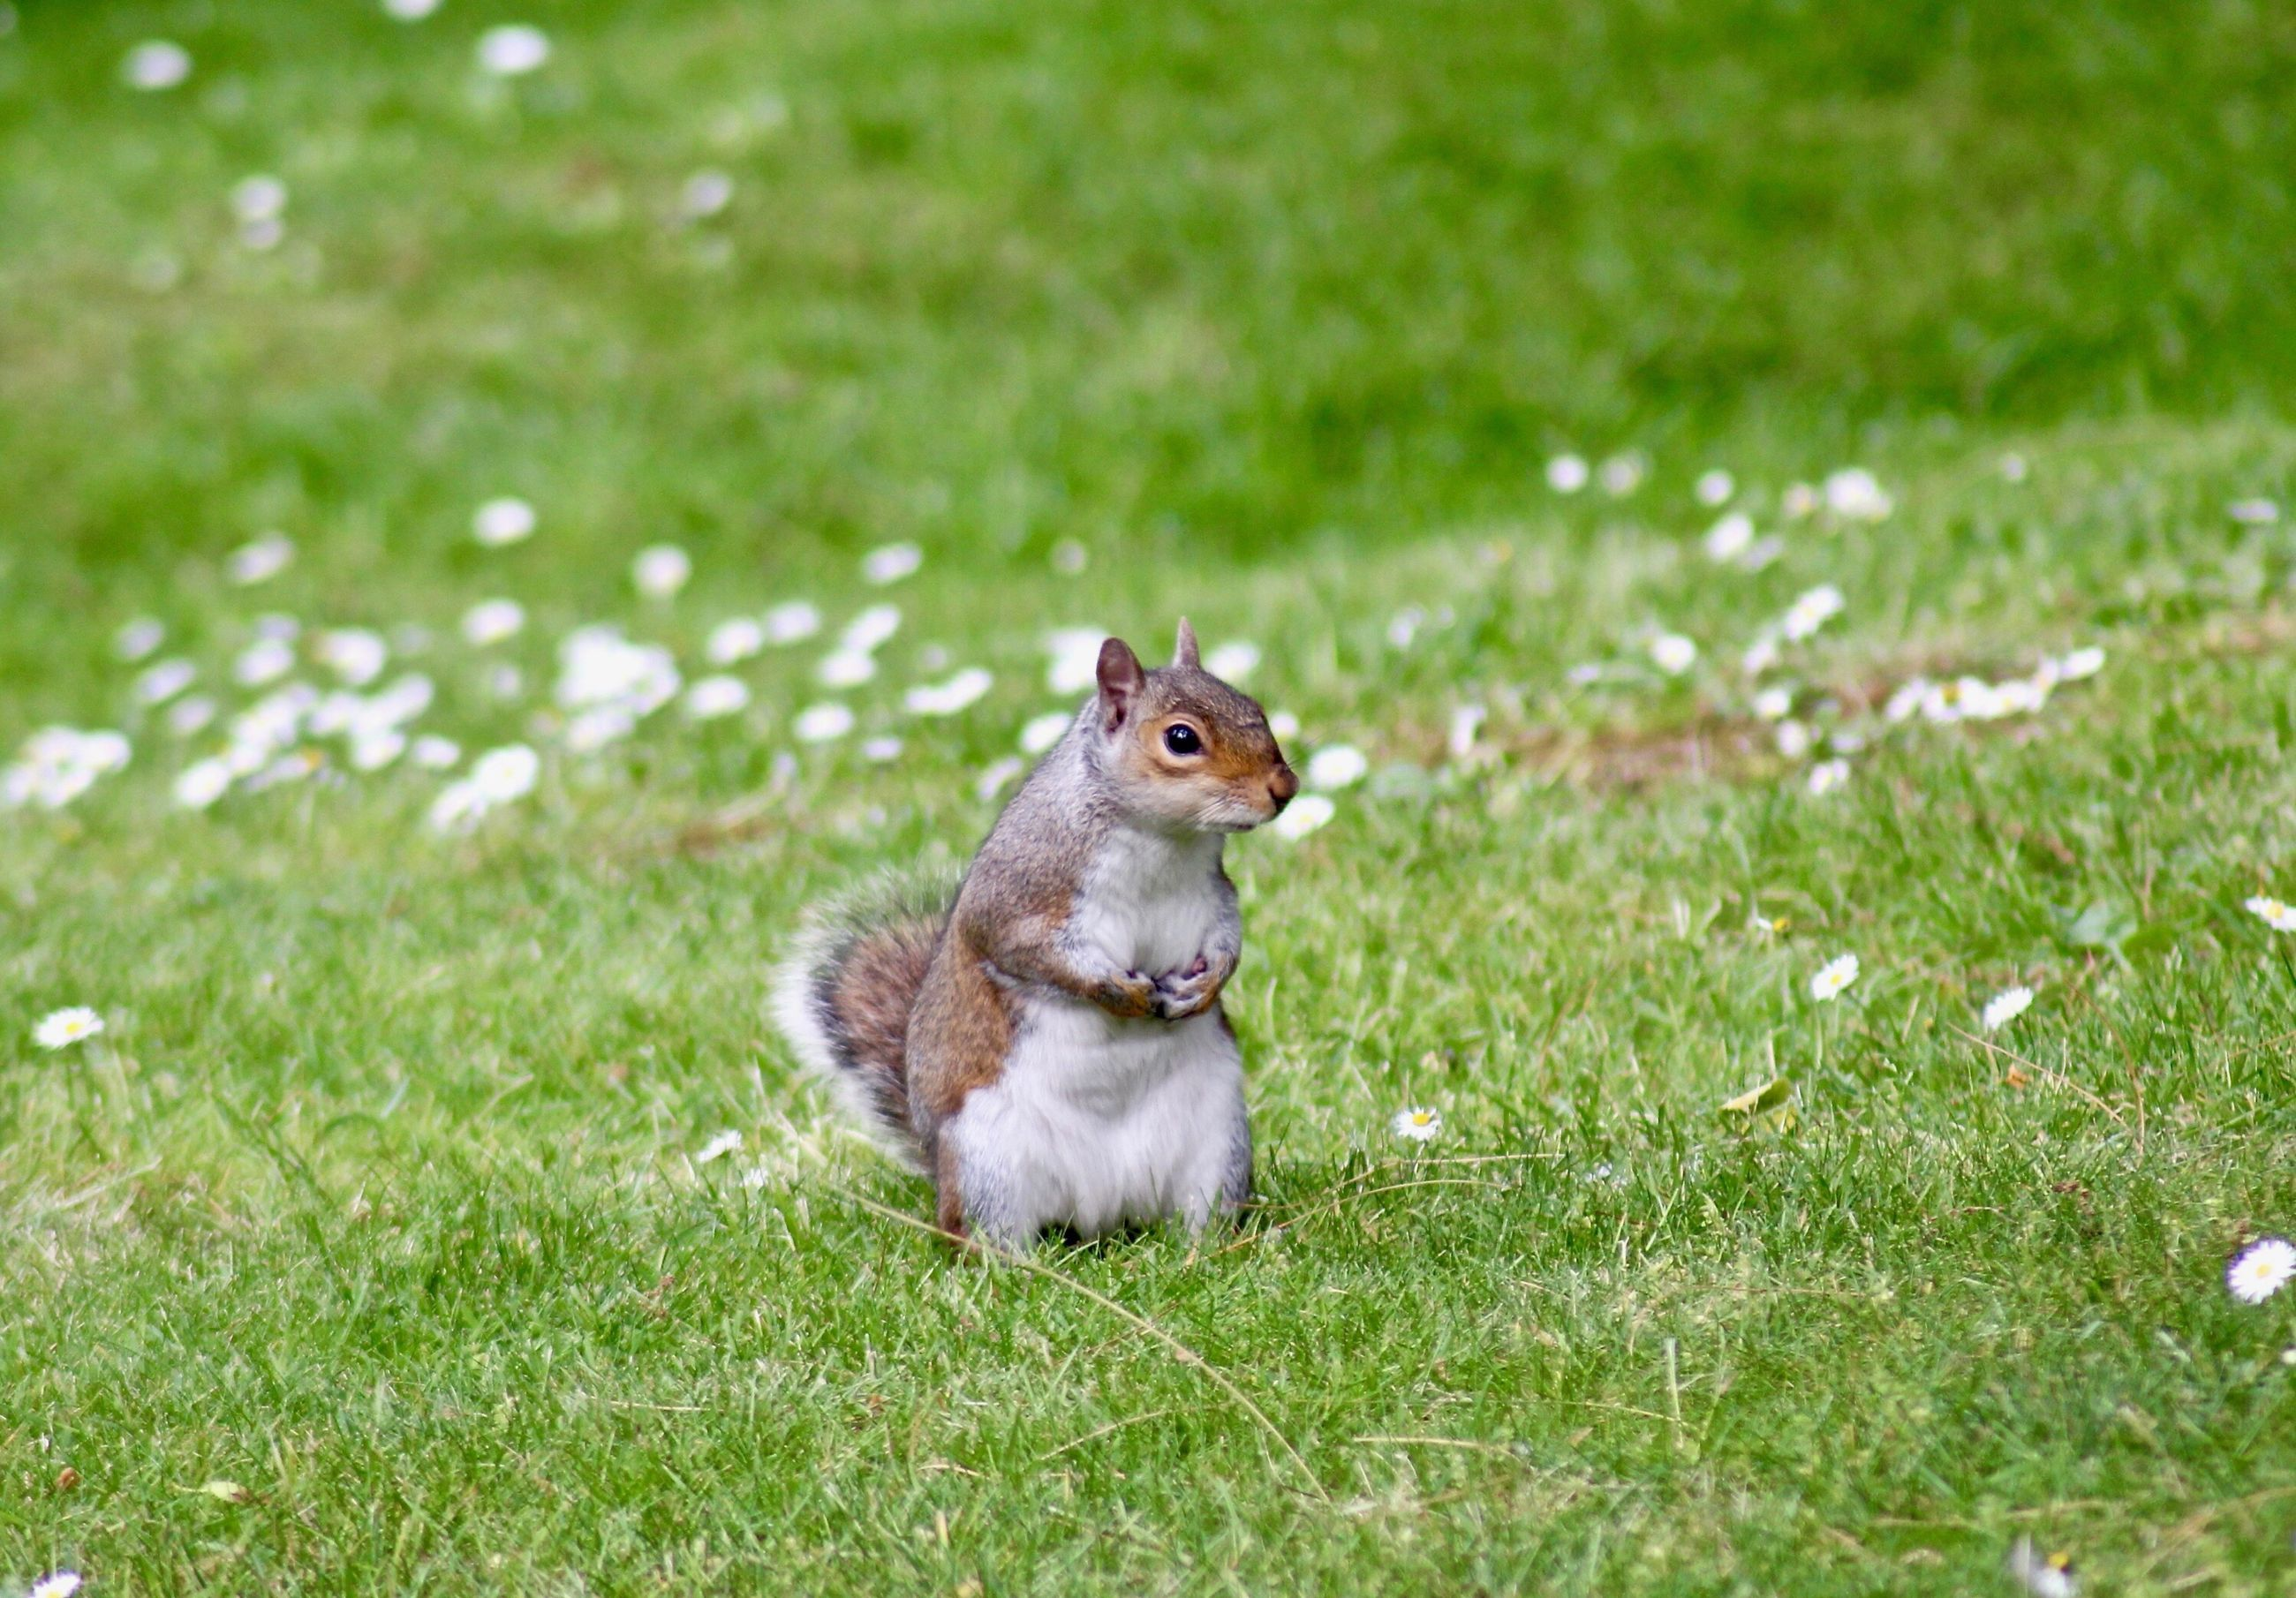 grass, one animal, field, outdoors, animal themes, no people, sitting, squirrel, day, nature, mammal, close-up